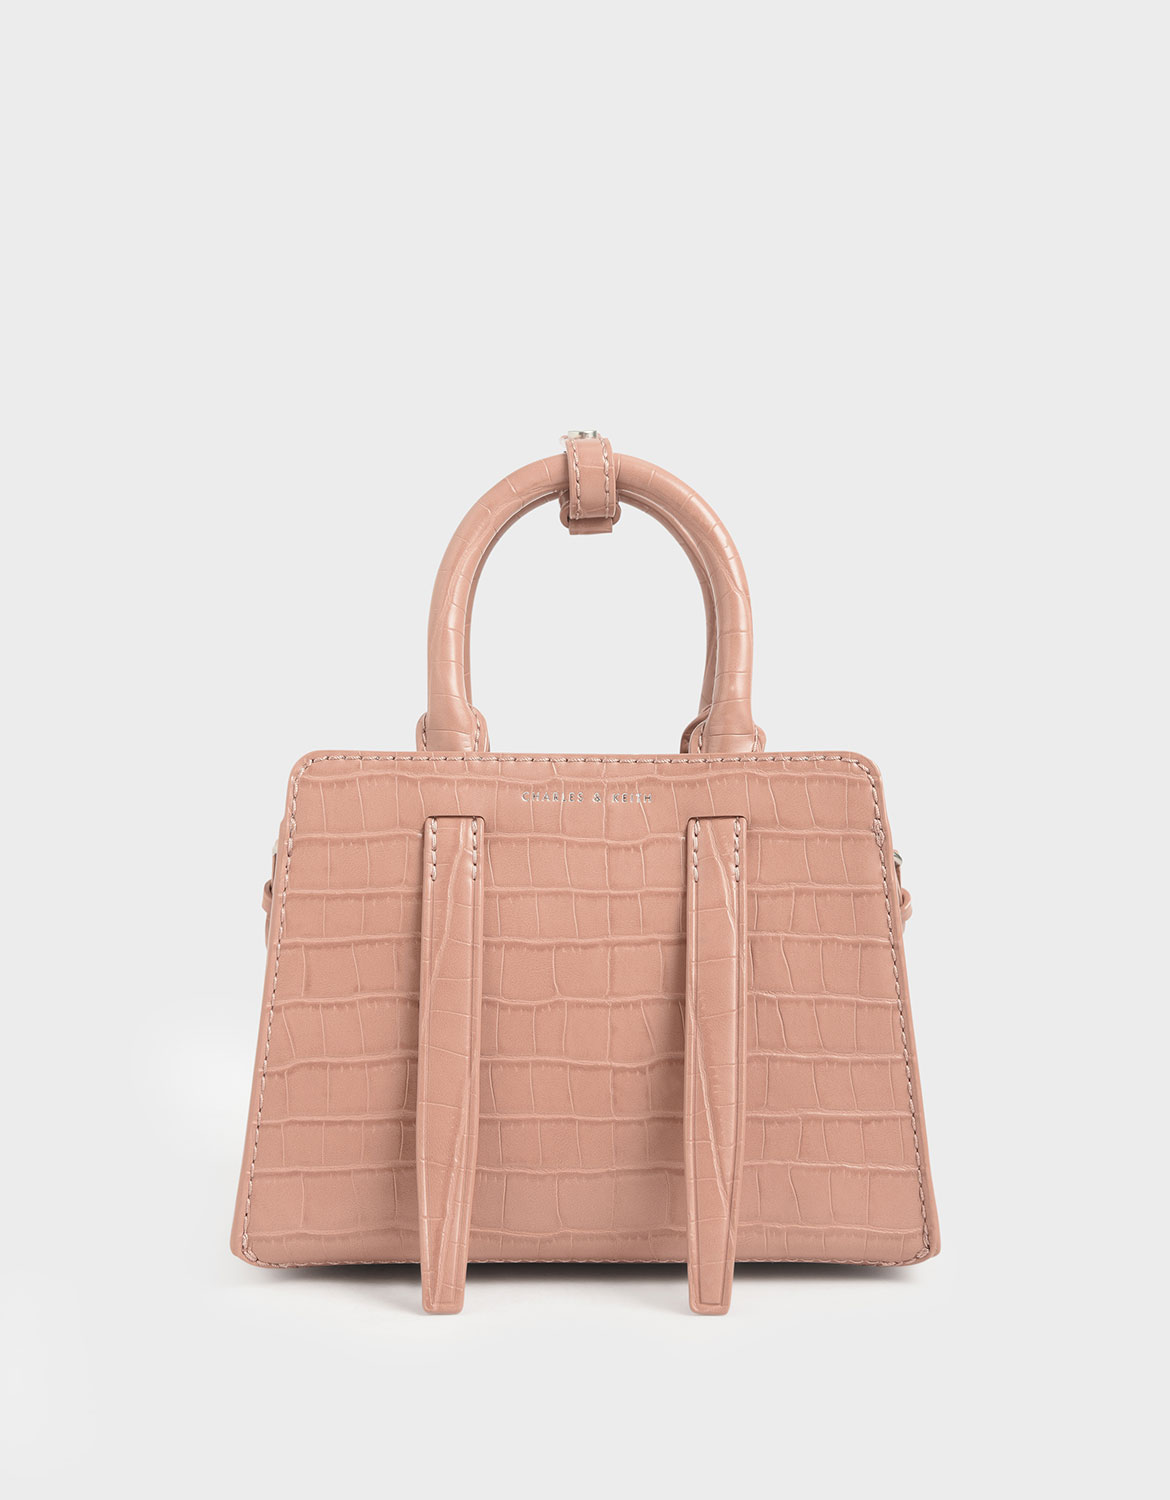 Women's blush croc-effect top handle bag